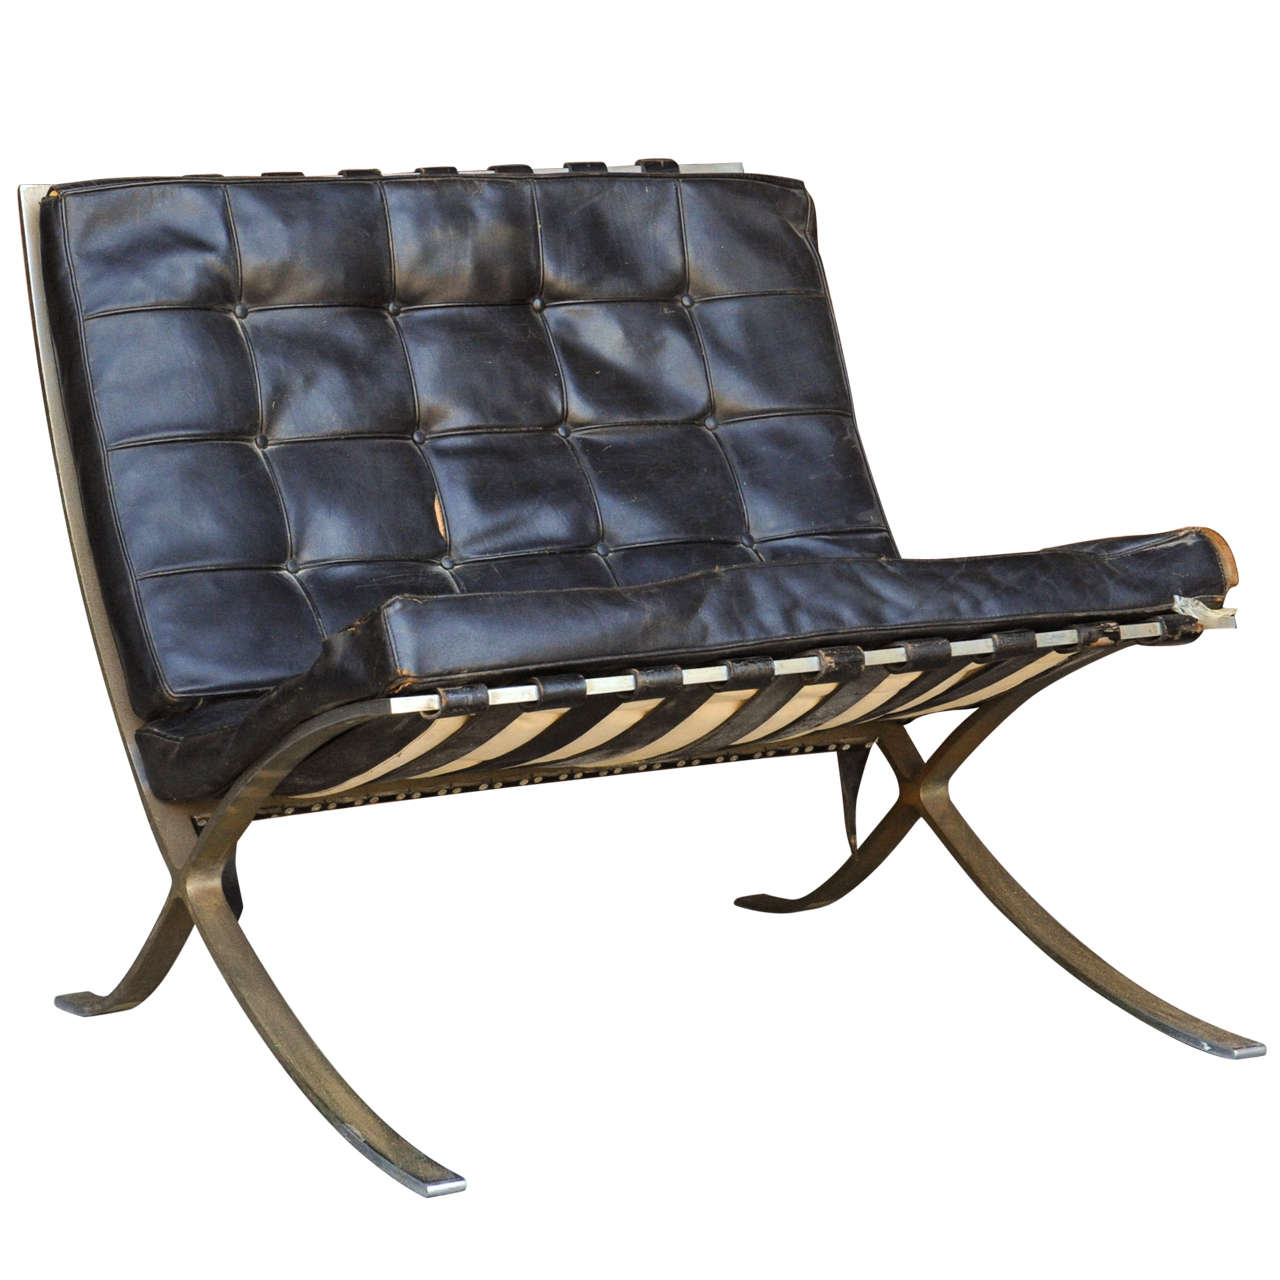 unrestored 50ies barcelona chair by mies van der rohe for. Black Bedroom Furniture Sets. Home Design Ideas